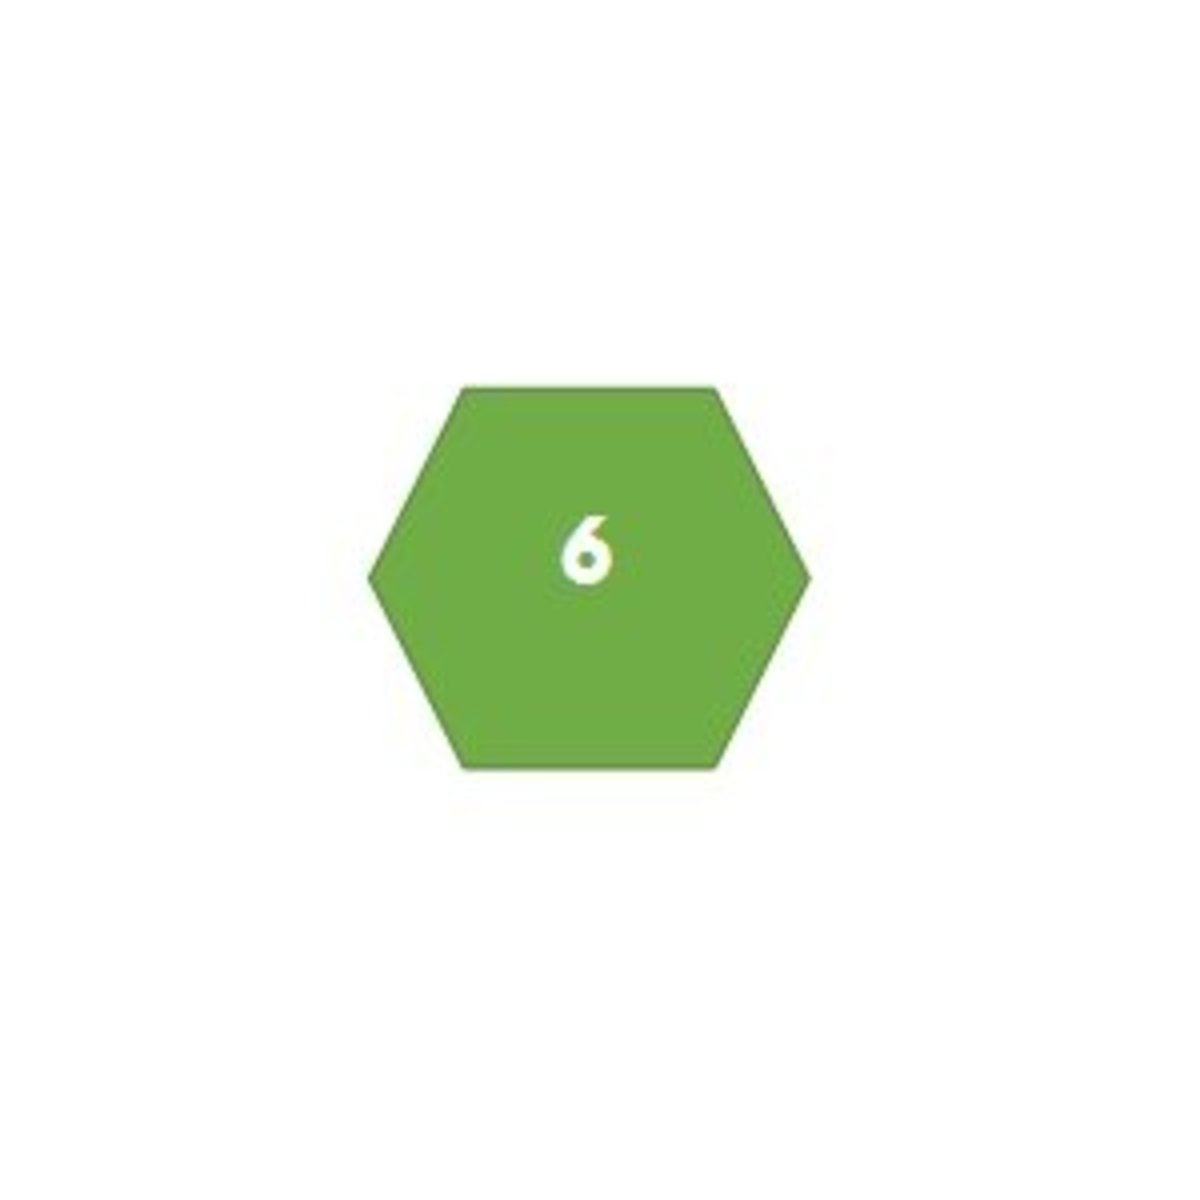 A hexagon has 6 sides.